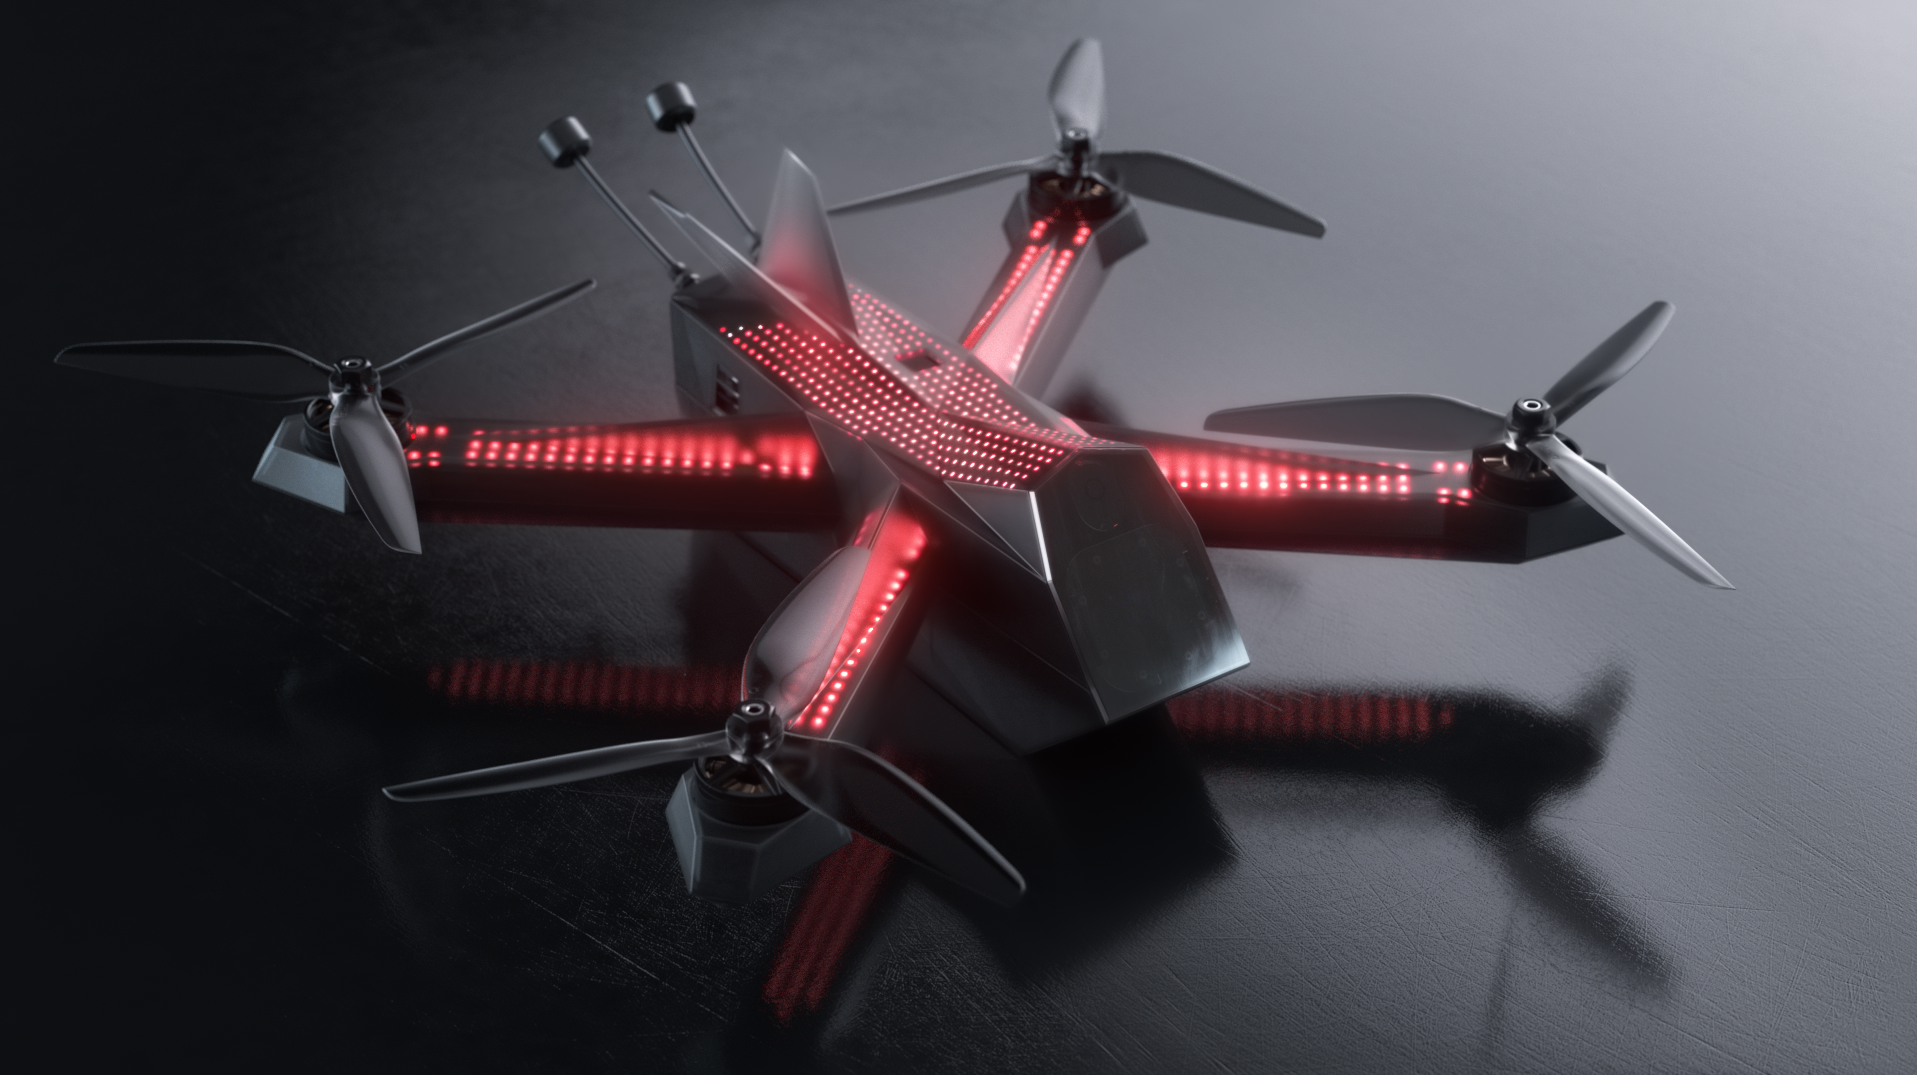 DRL Racer4 Drone from the Drone Racing League